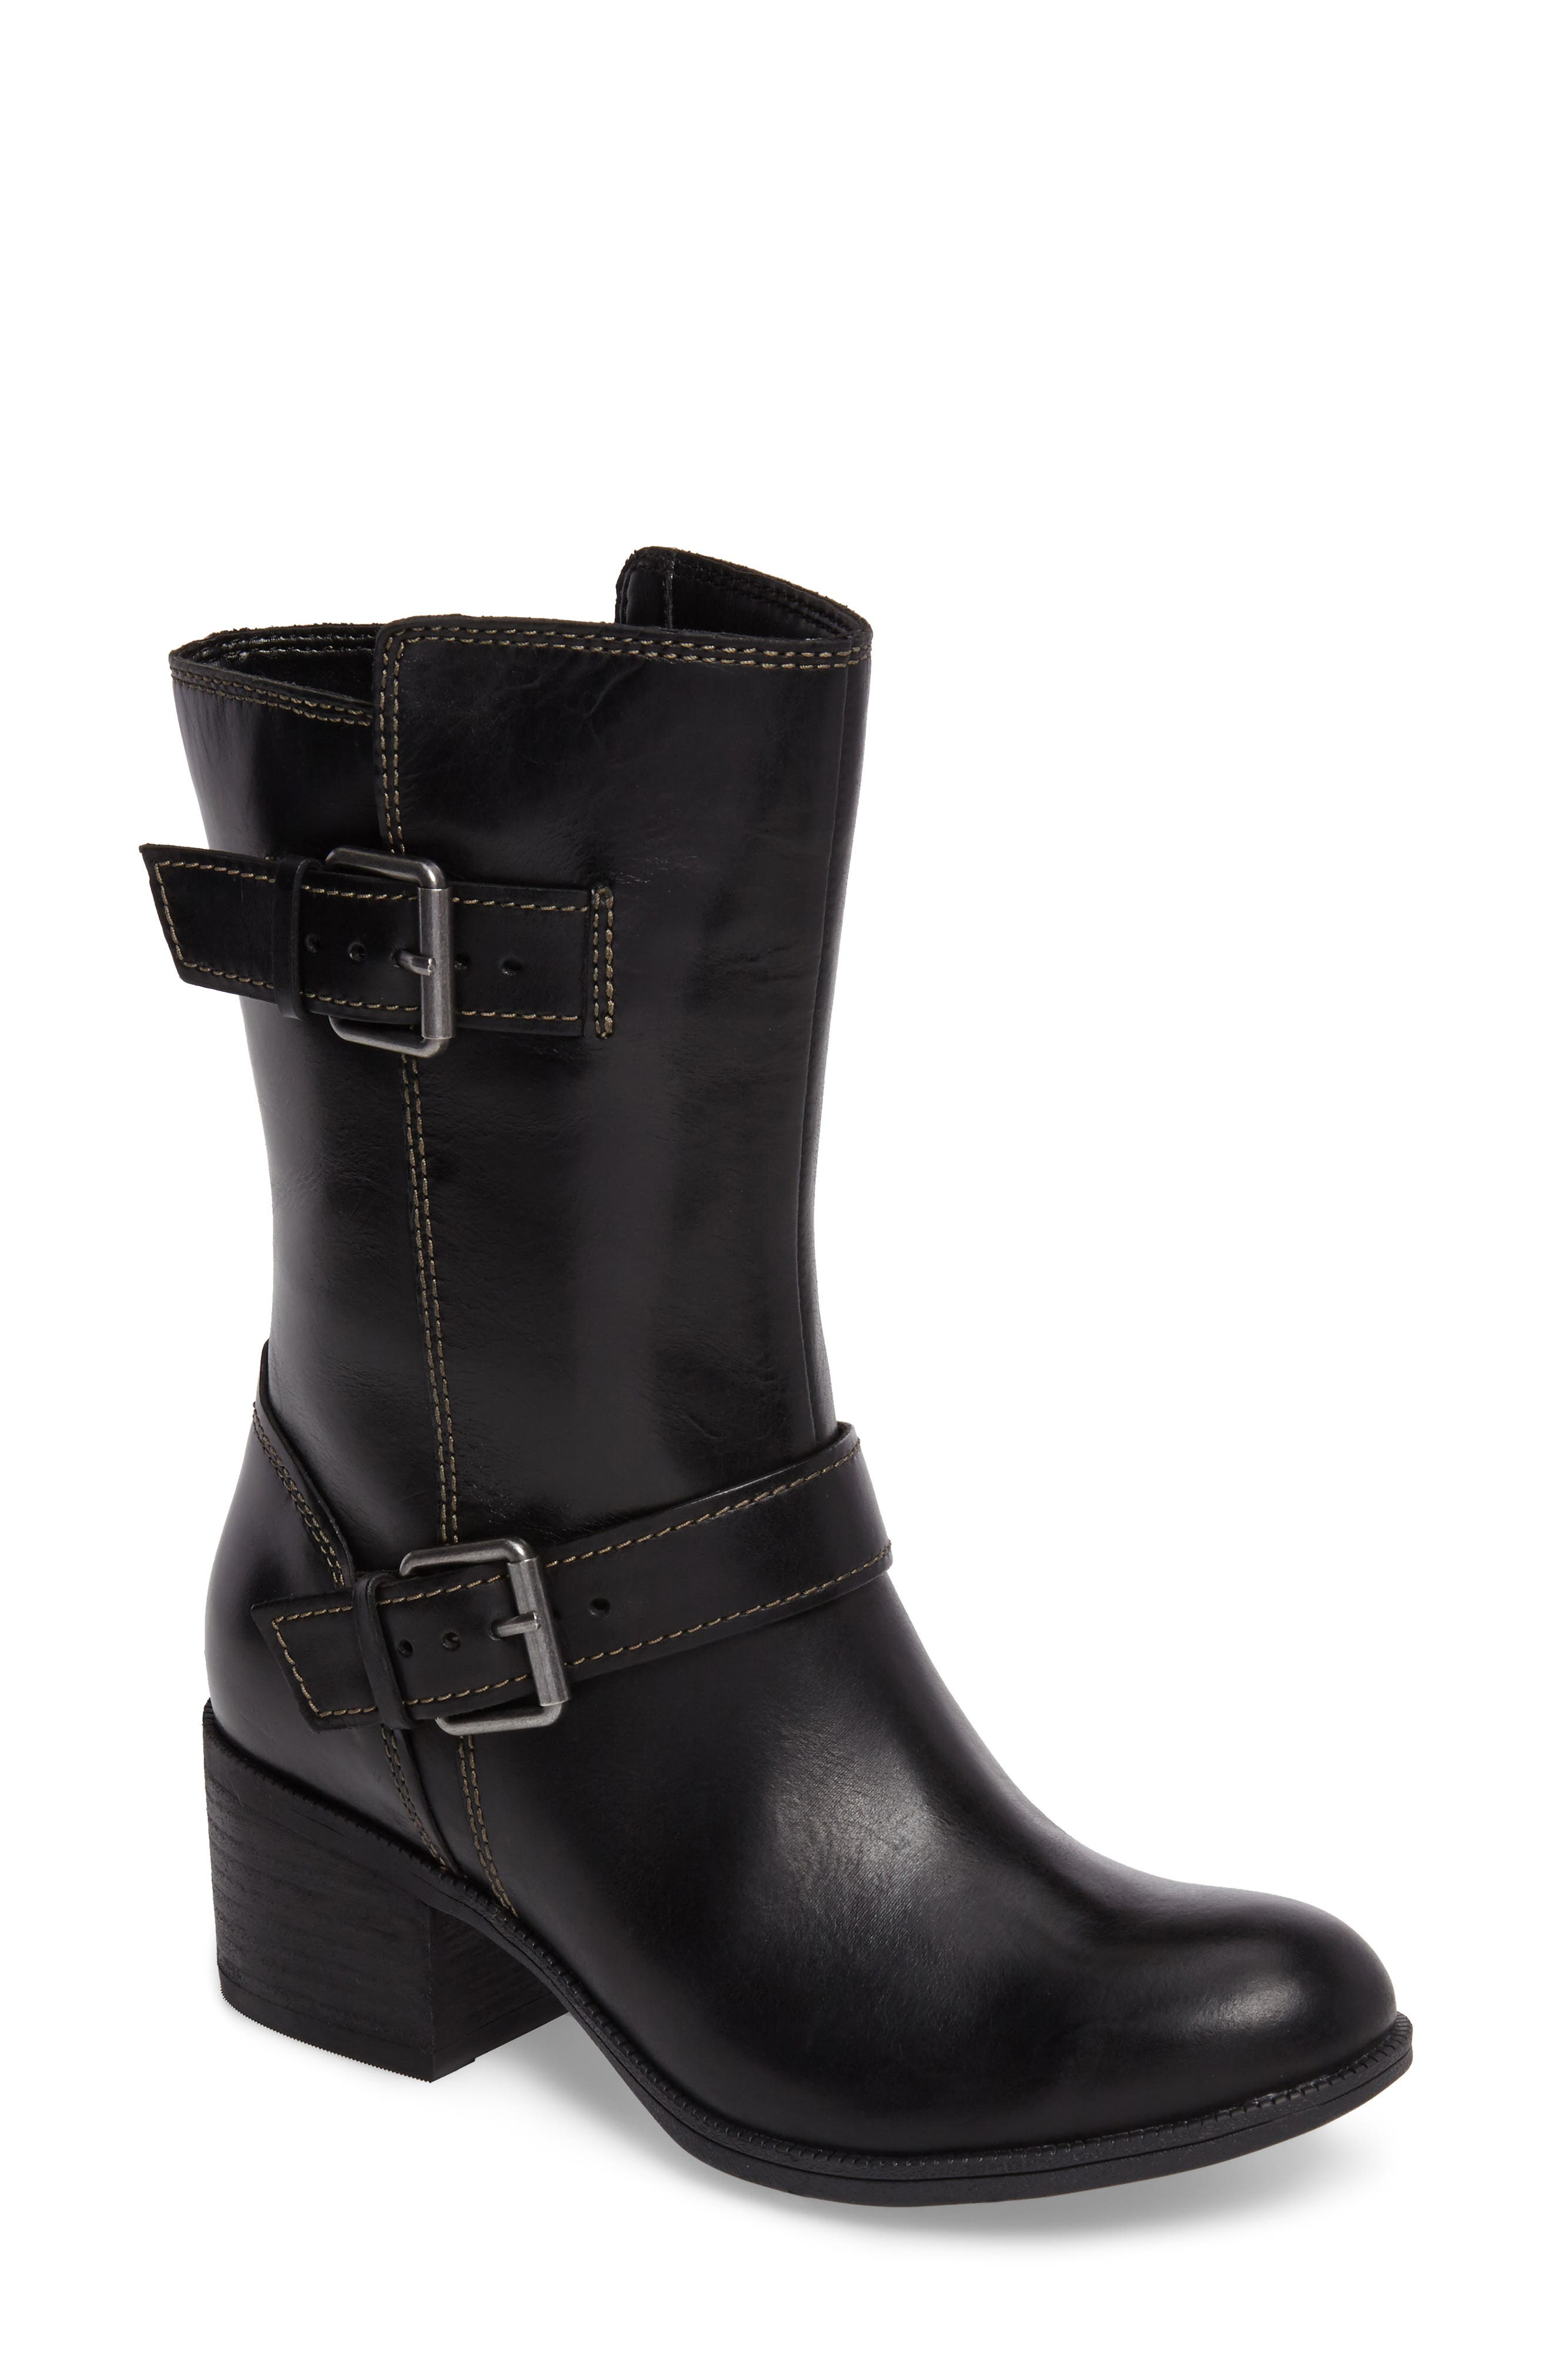 Maypearl Oasis Boot,                             Main thumbnail 1, color,                             Black Leather